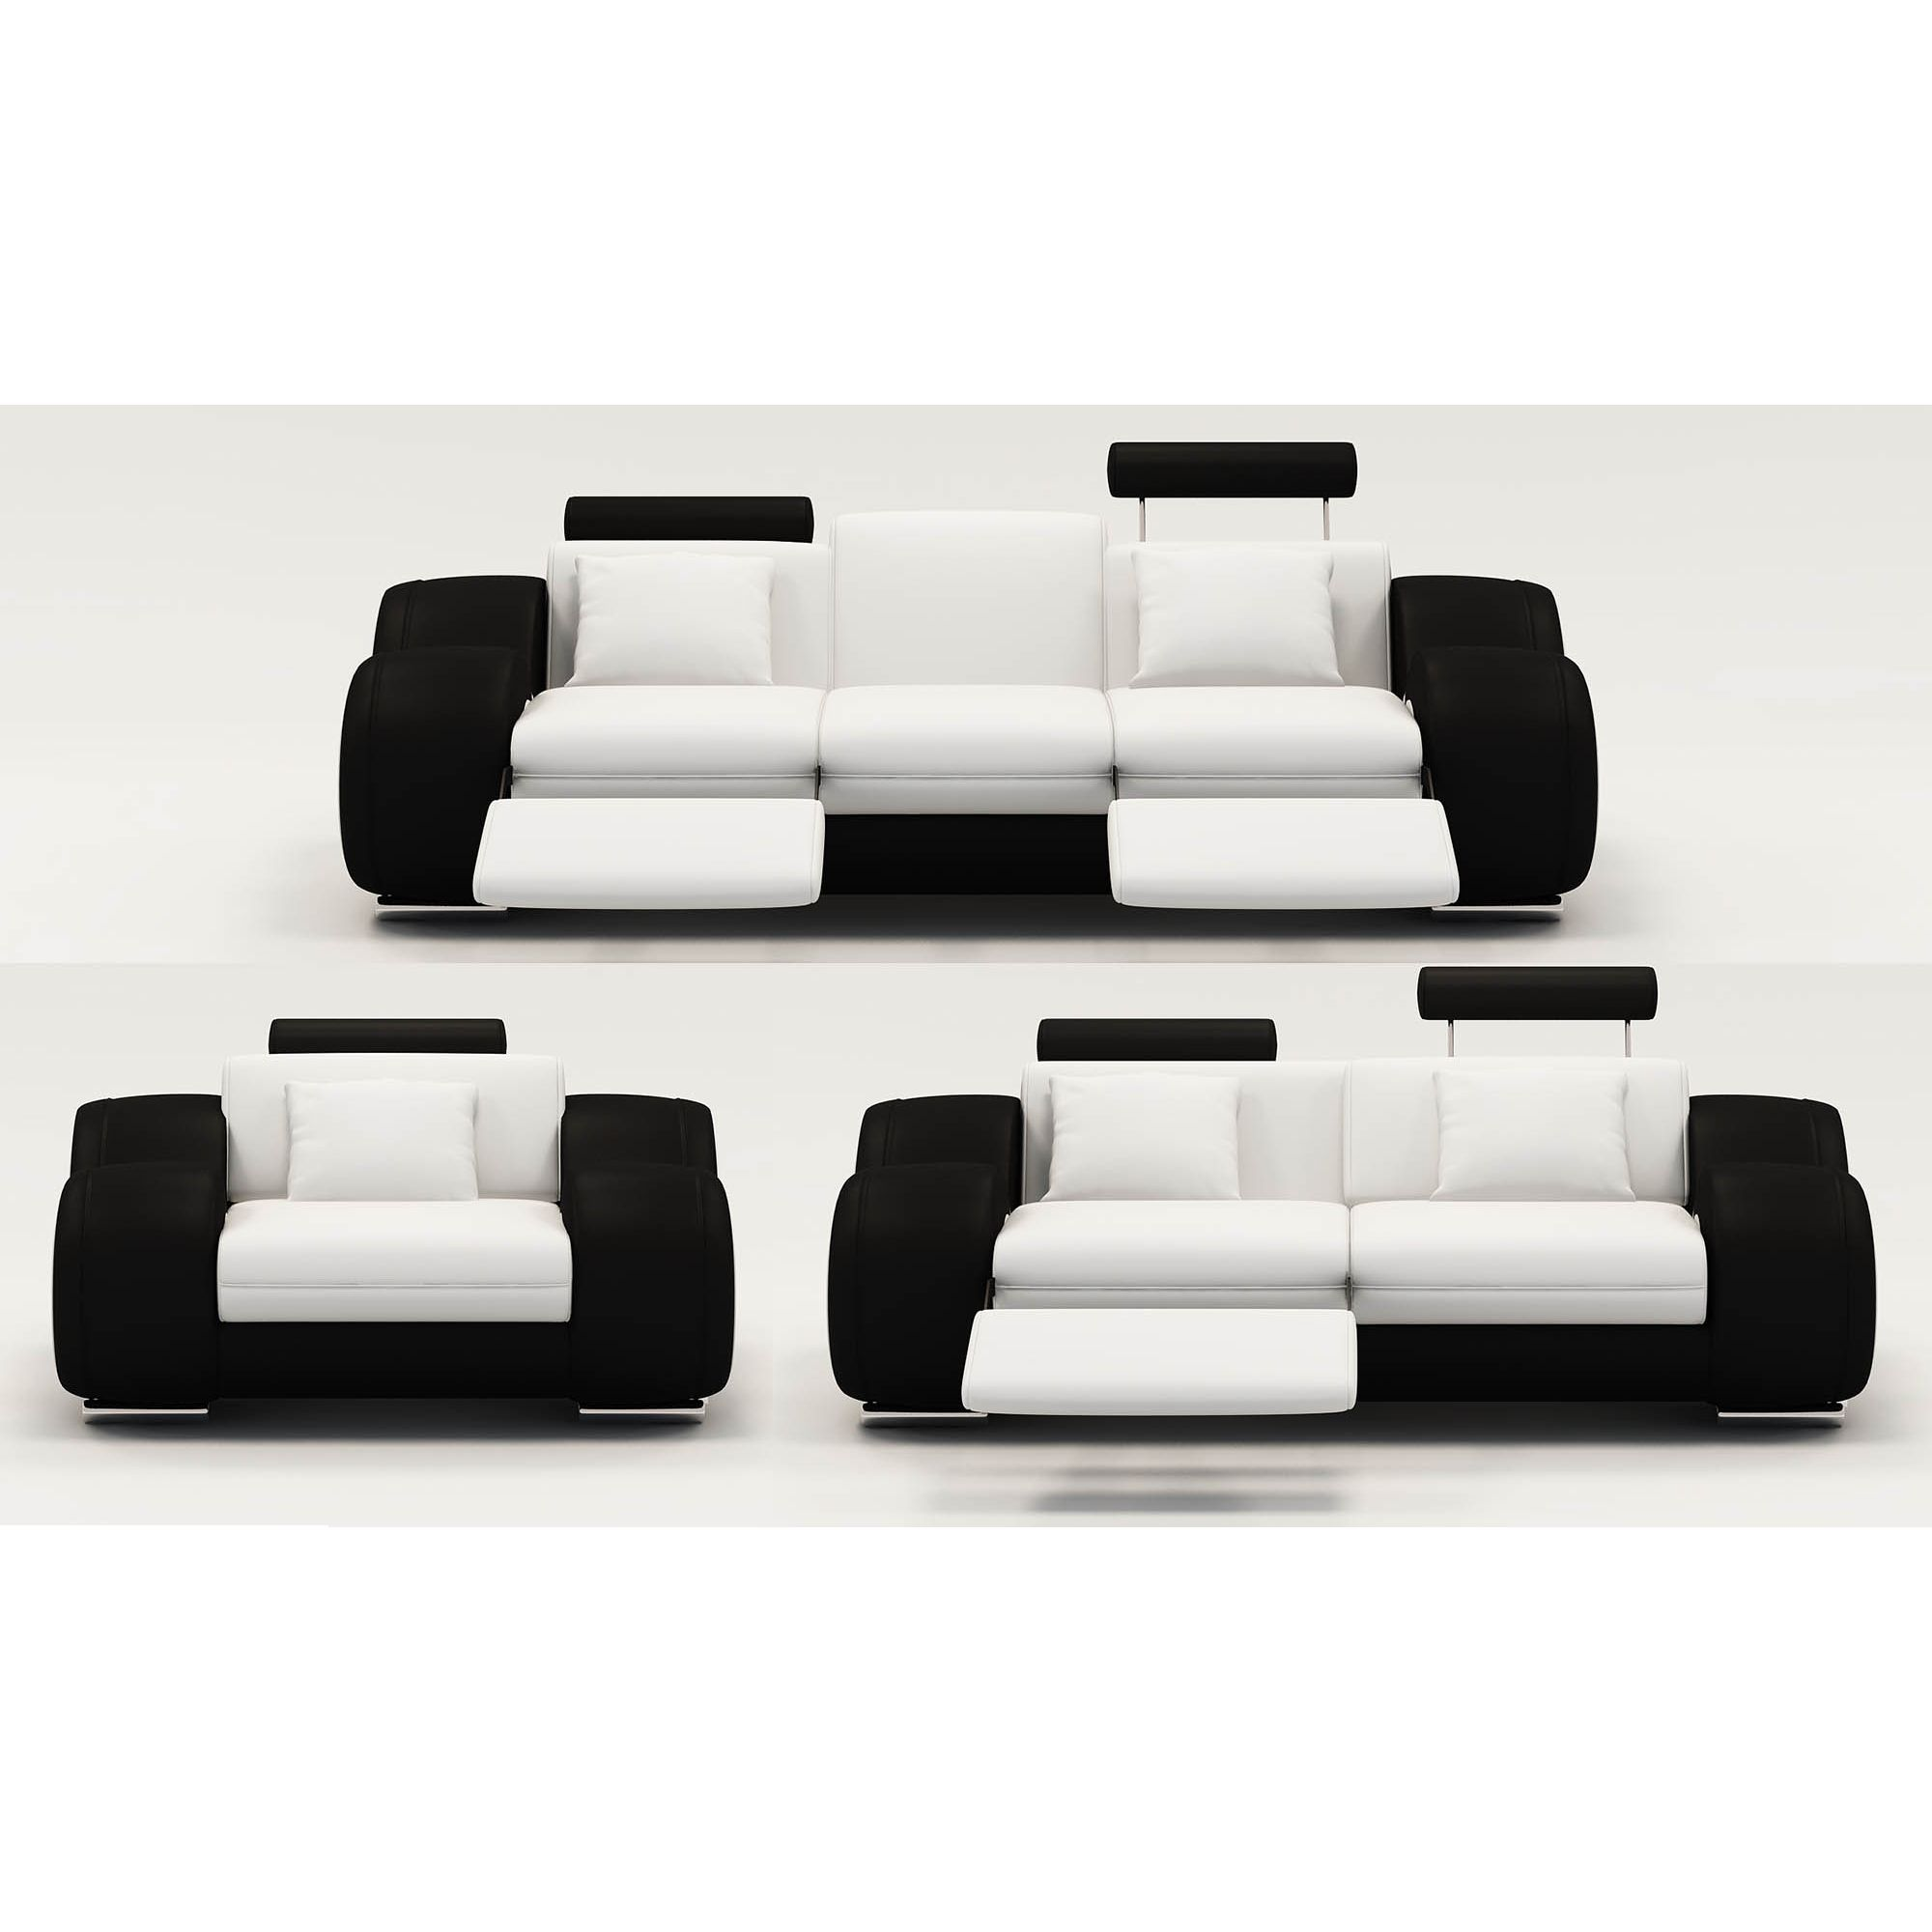 Deco in paris ensemble canape relax design 3 2 places for Canape blanc 2 places